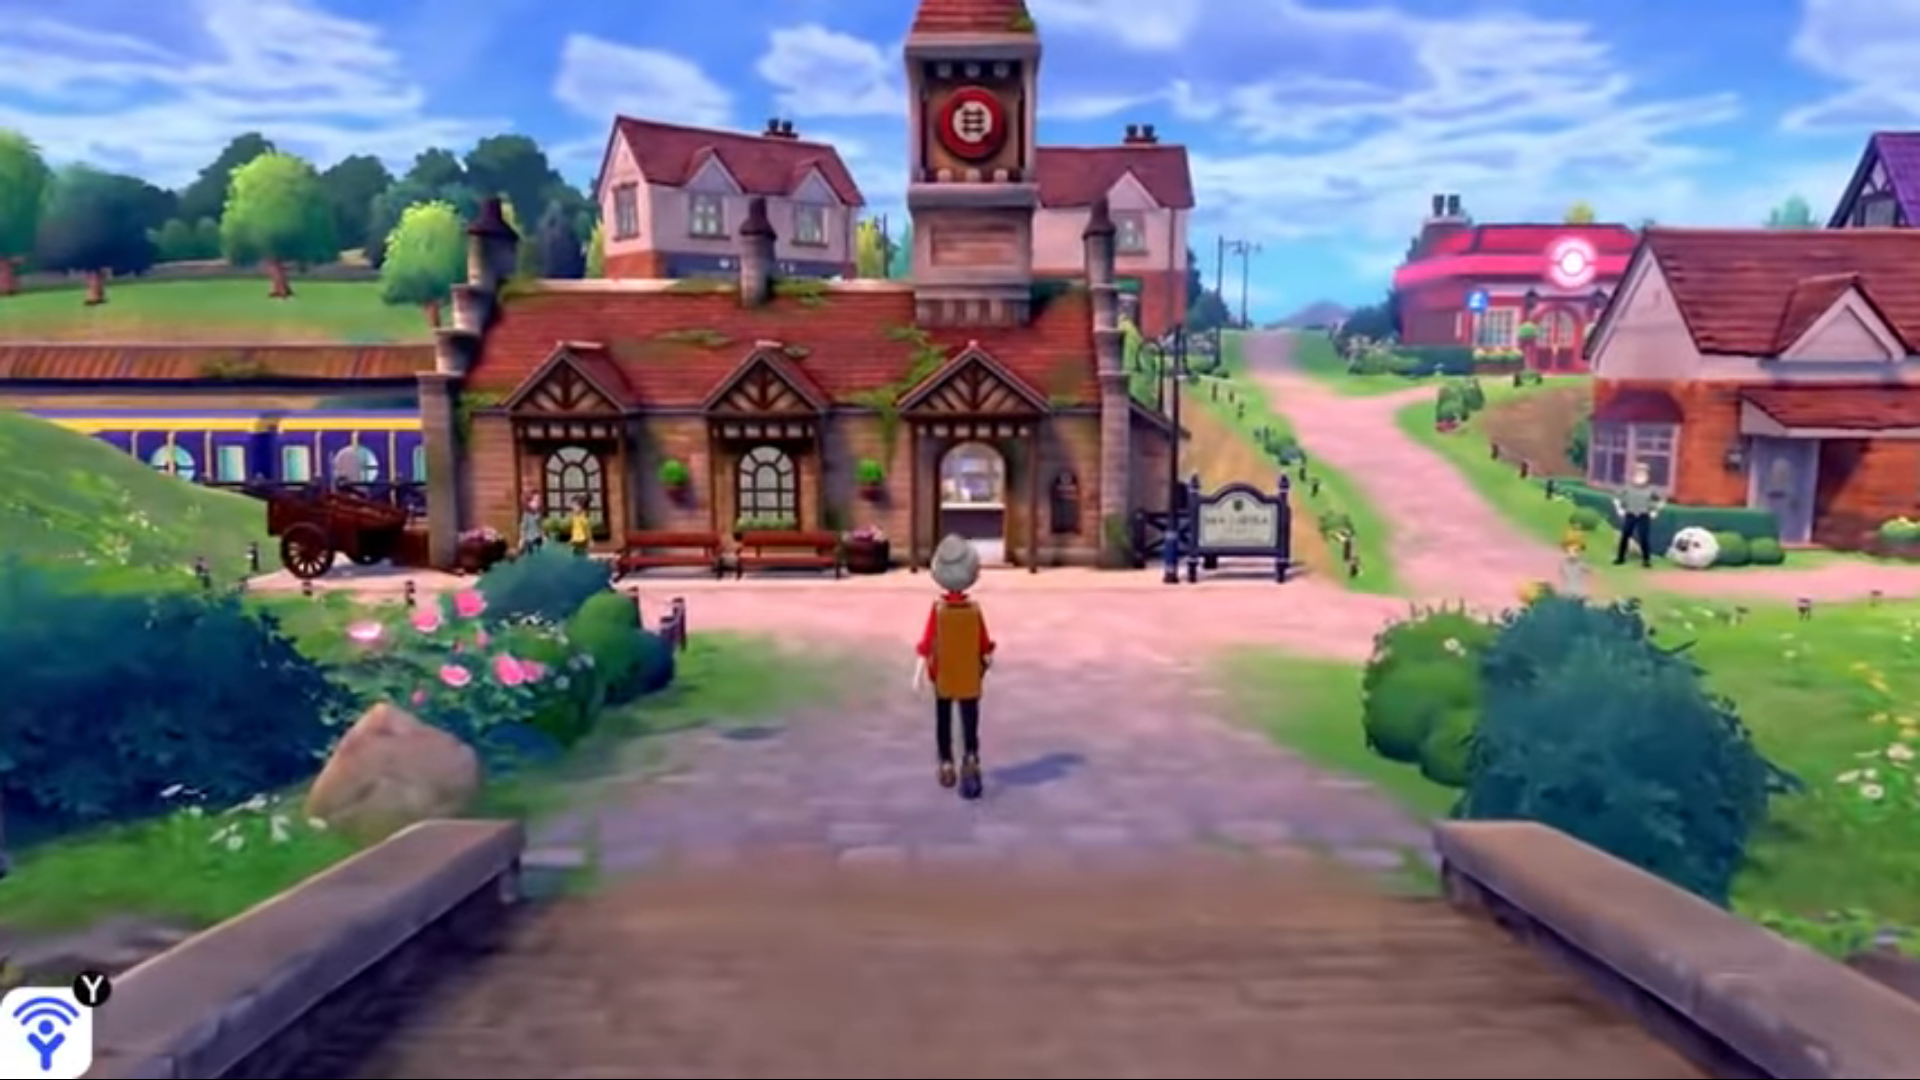 Where is Pokemon Sword and Shield's Wild Area?